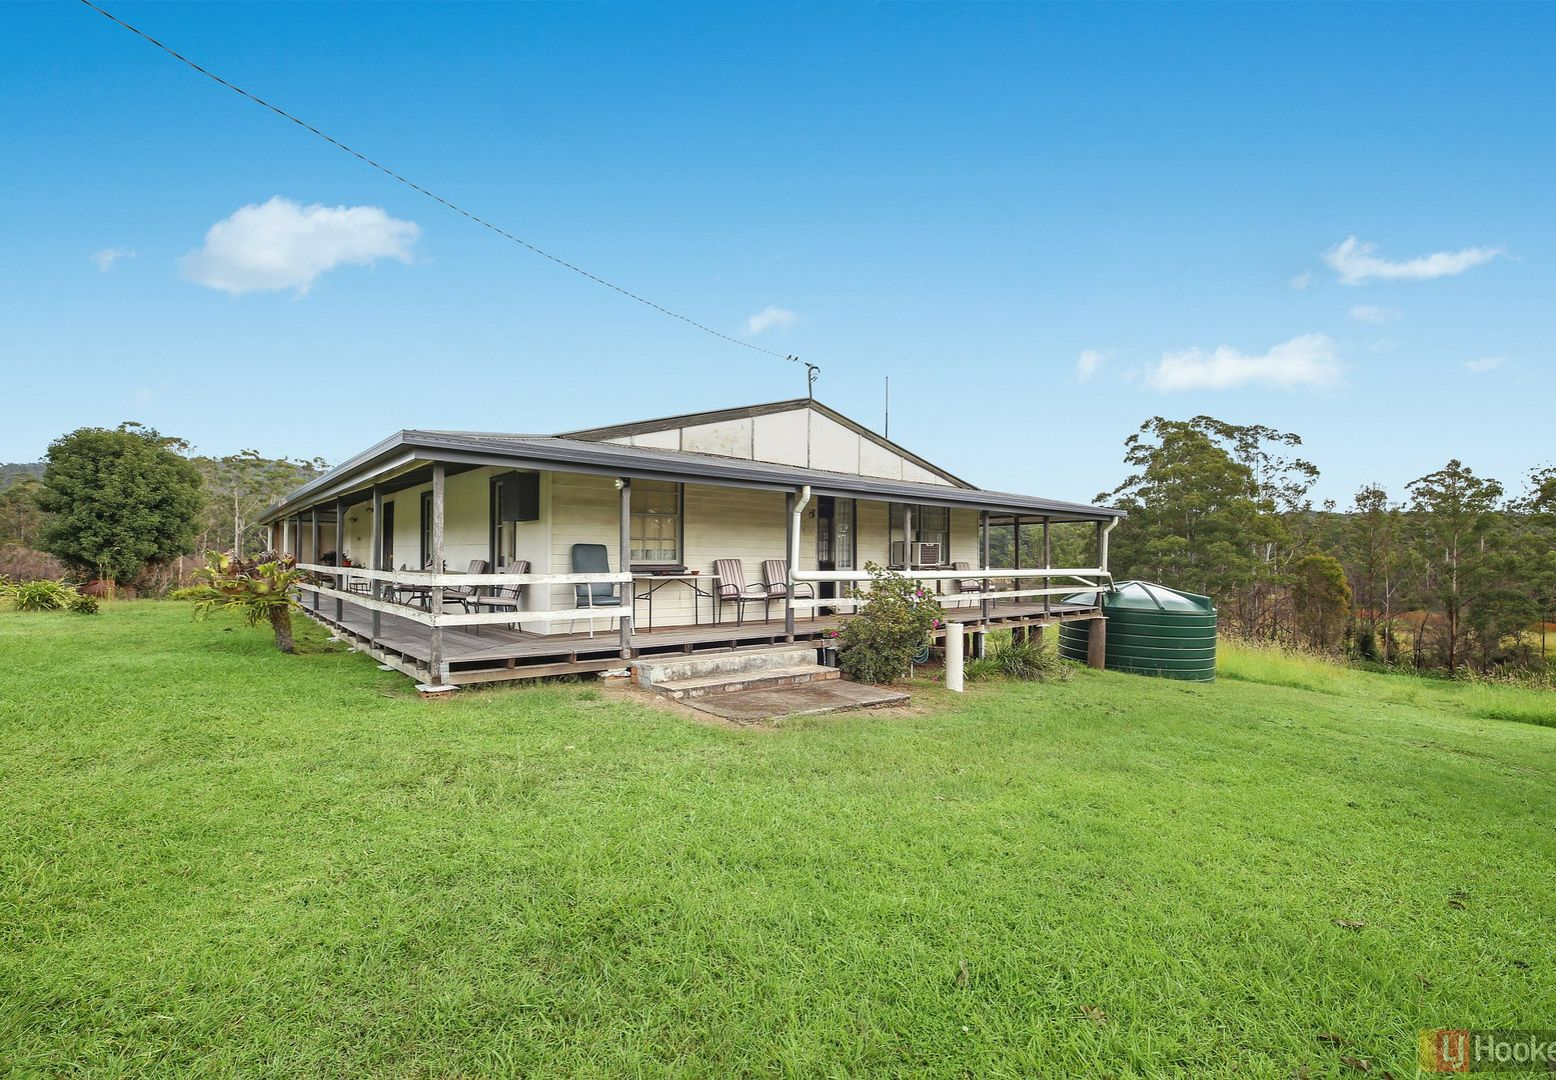 119 126 130 Rainbows End Road, Dondingalong NSW 2440, Image 1